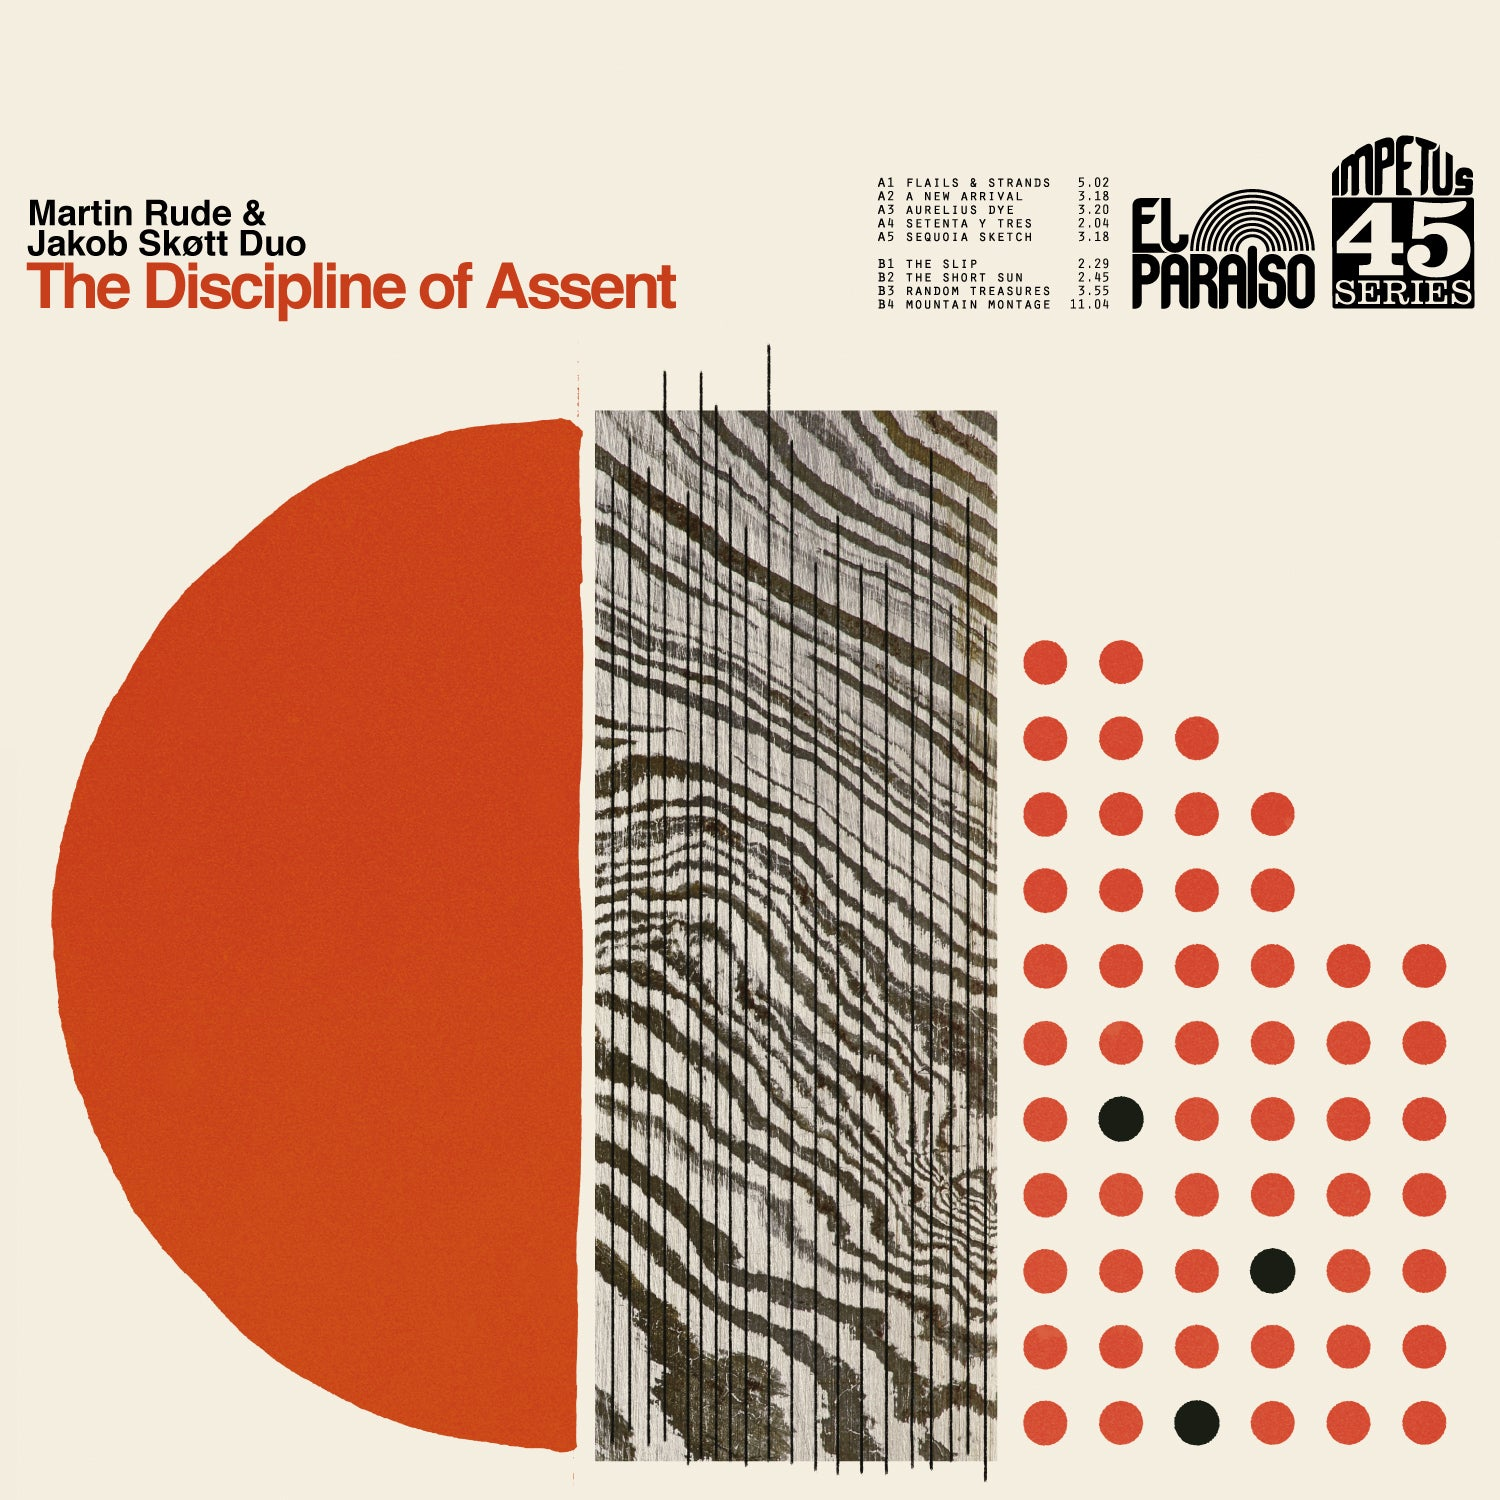 Martin Rude & Jakob Skøtt Duo - The Discipline of Assent